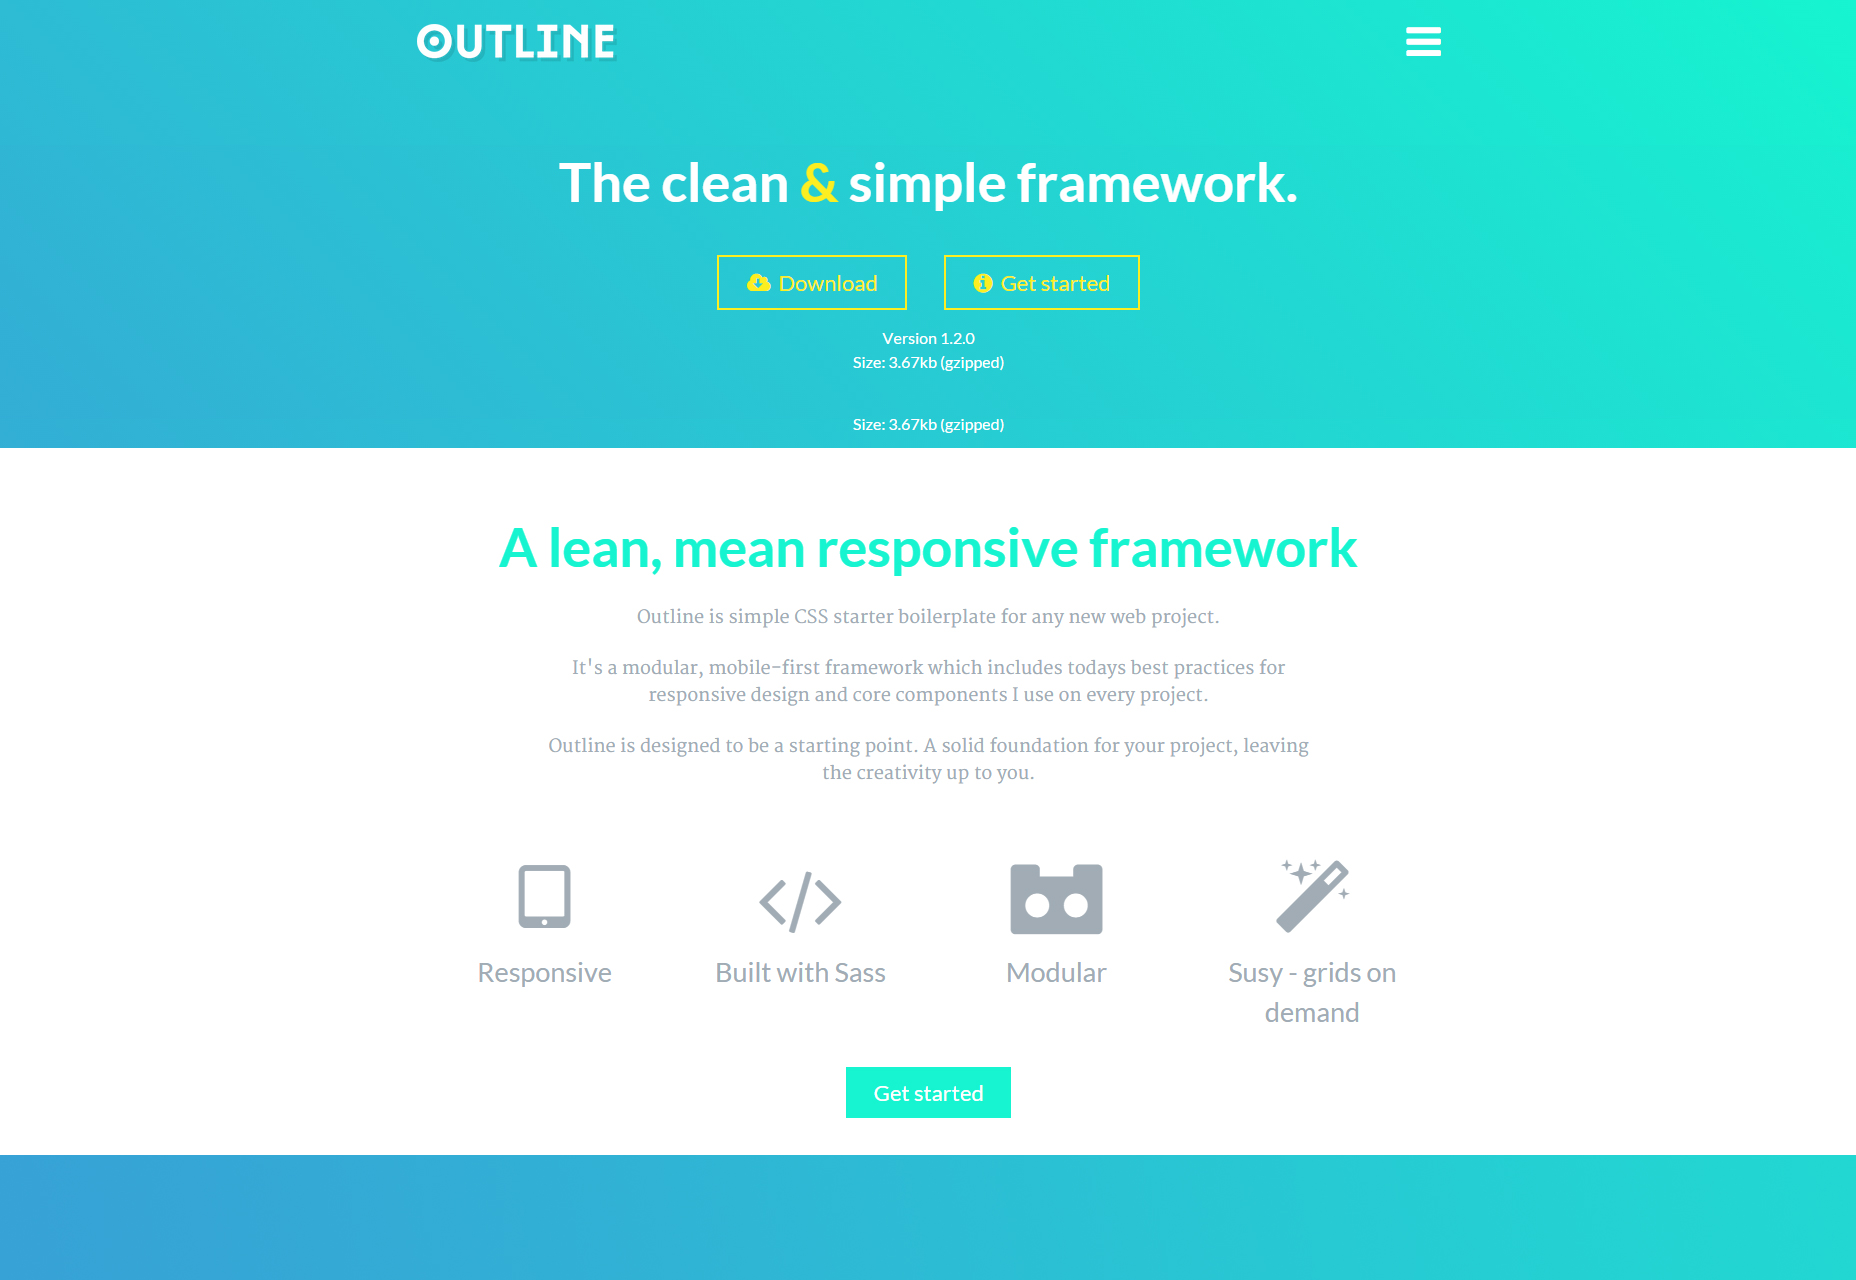 Outline - The Clean & Simple Responsive CSS Framework.